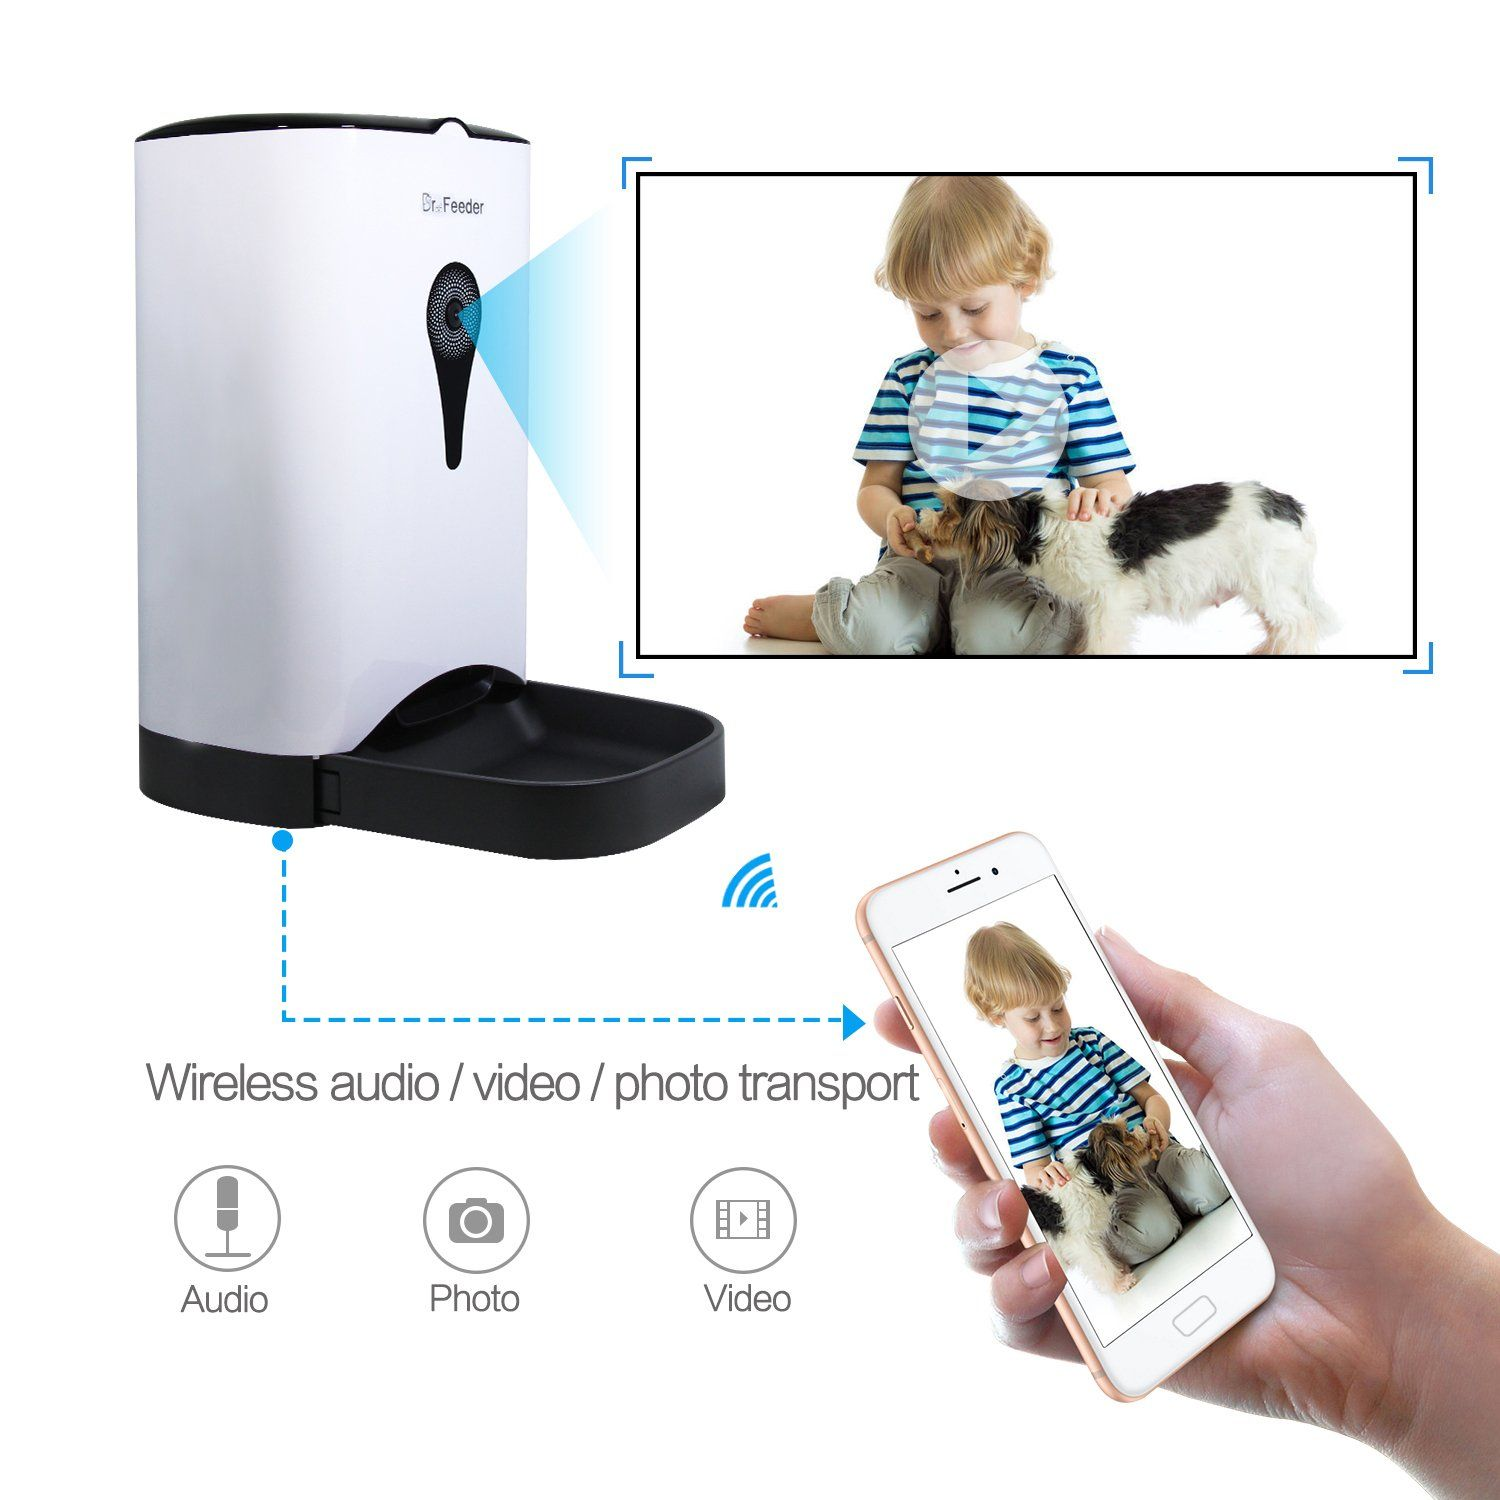 food dog speaker with control smartphone pet wifi portion interactive webcam light auto dp remote dispenser cat feeder automatic night